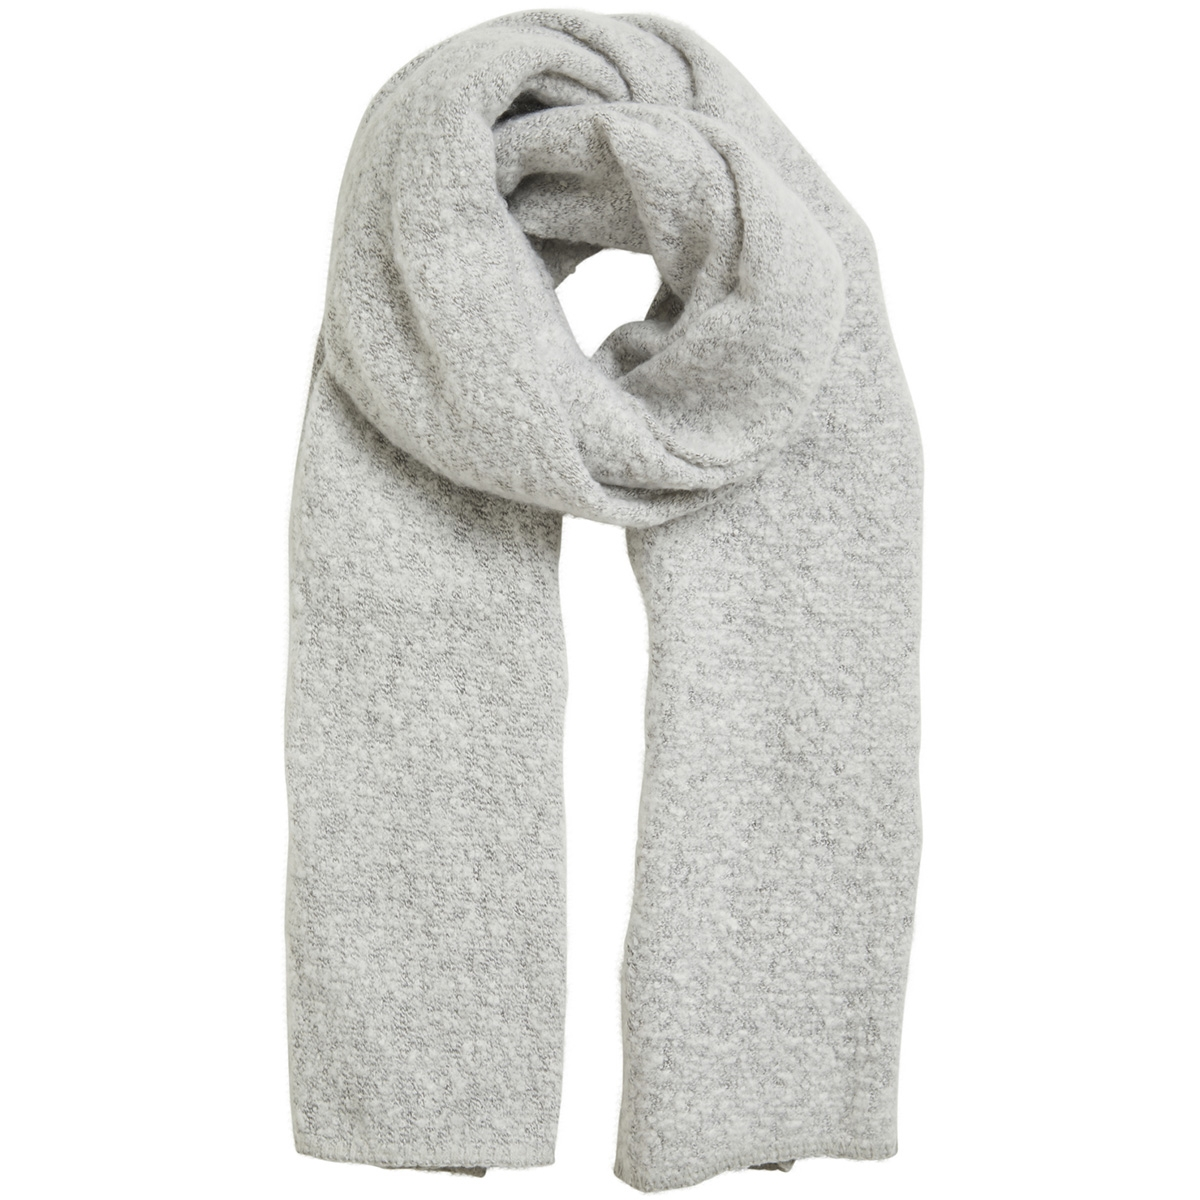 vitobi knit scarf-noos 14047111 vila sjaal light grey melange